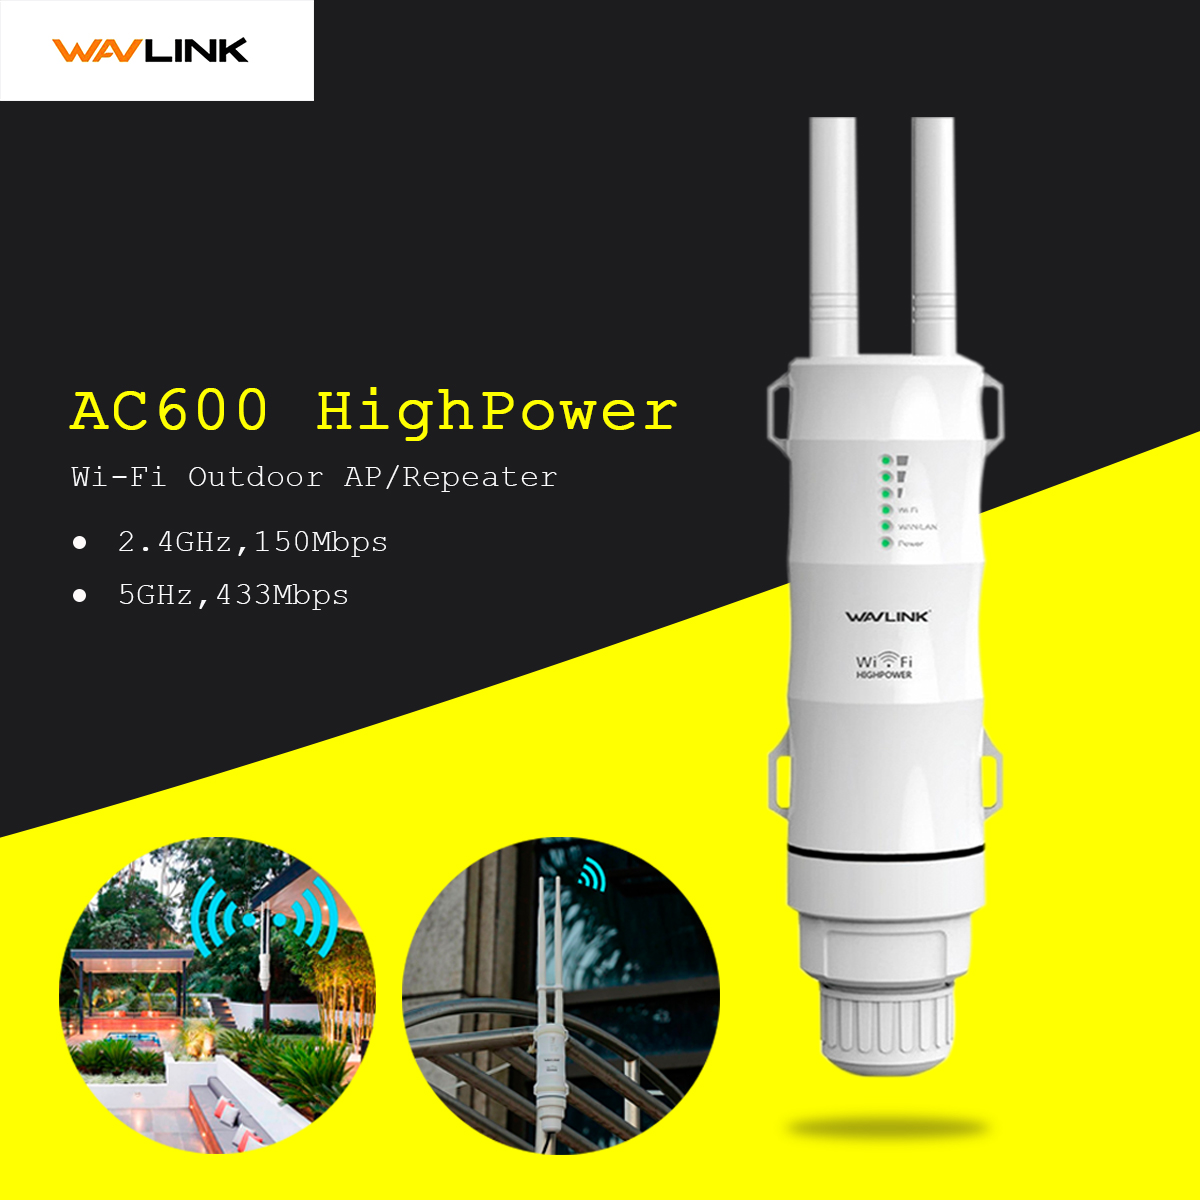 Wavlink AC600 2.4g/5G High Power Outdooor Waterproof WIFI Router/AP Repeater 2 Antennas AU Plug 30